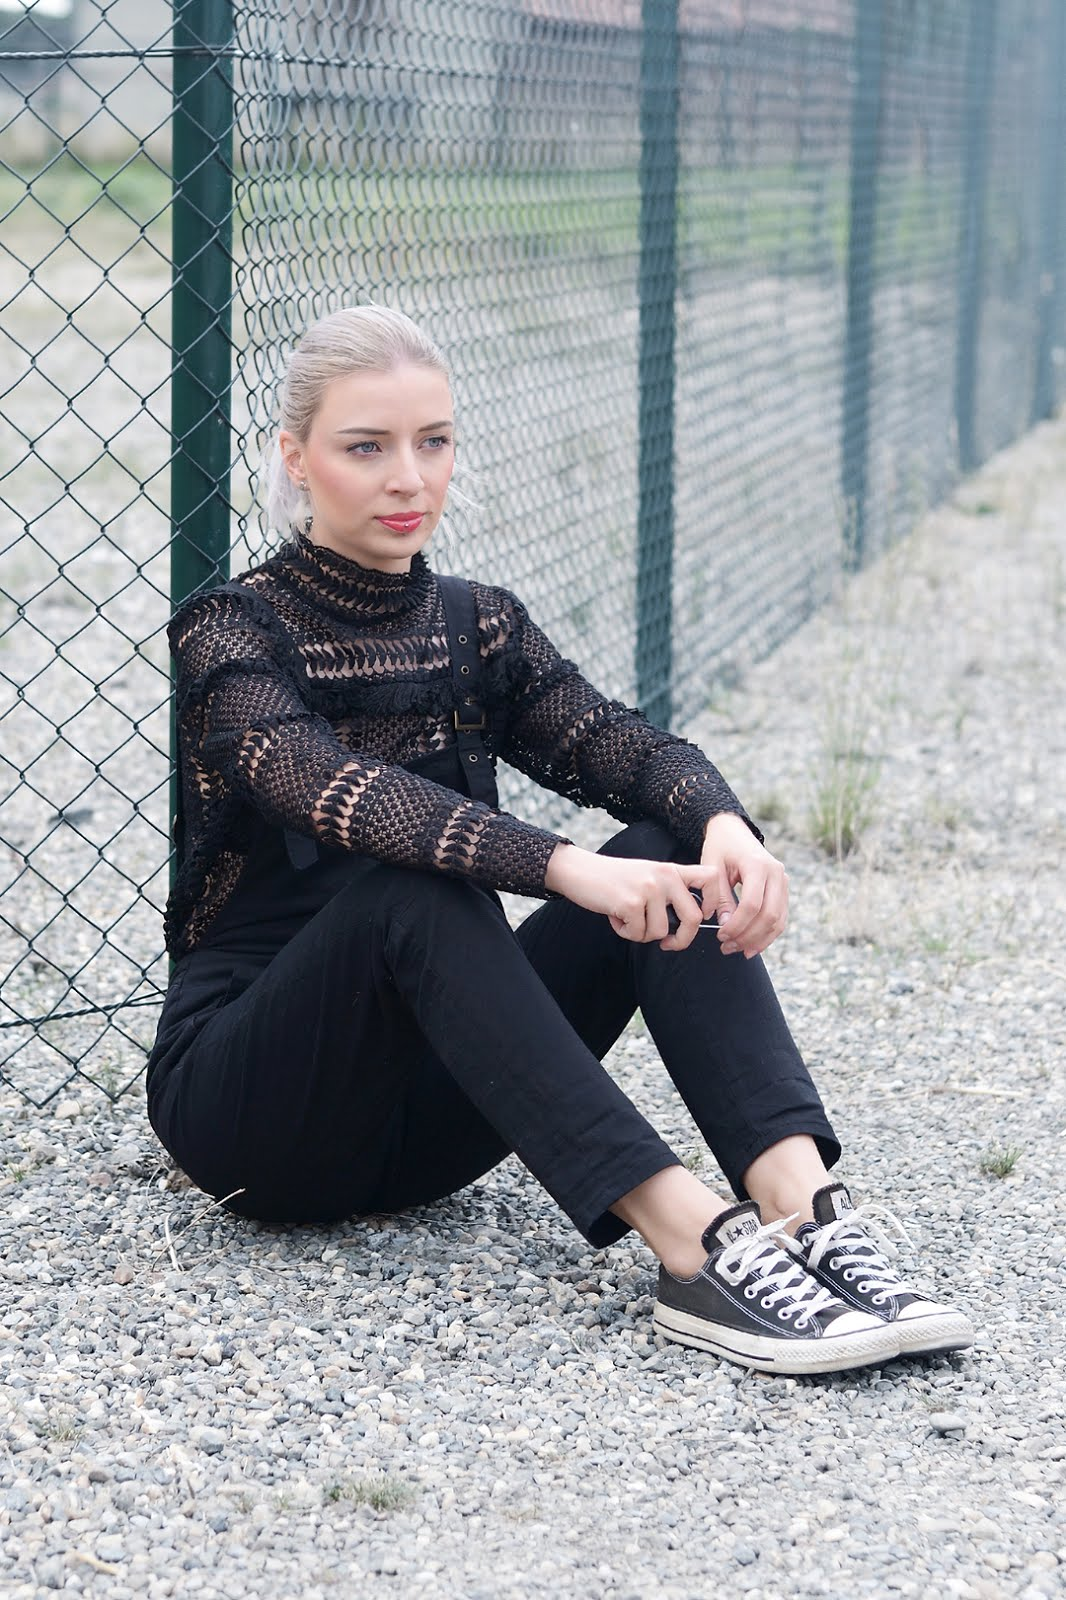 Crochet long sleeve top, moth clothing, asos dungarees, all black, grey hair, mode blogger, belgie, street style